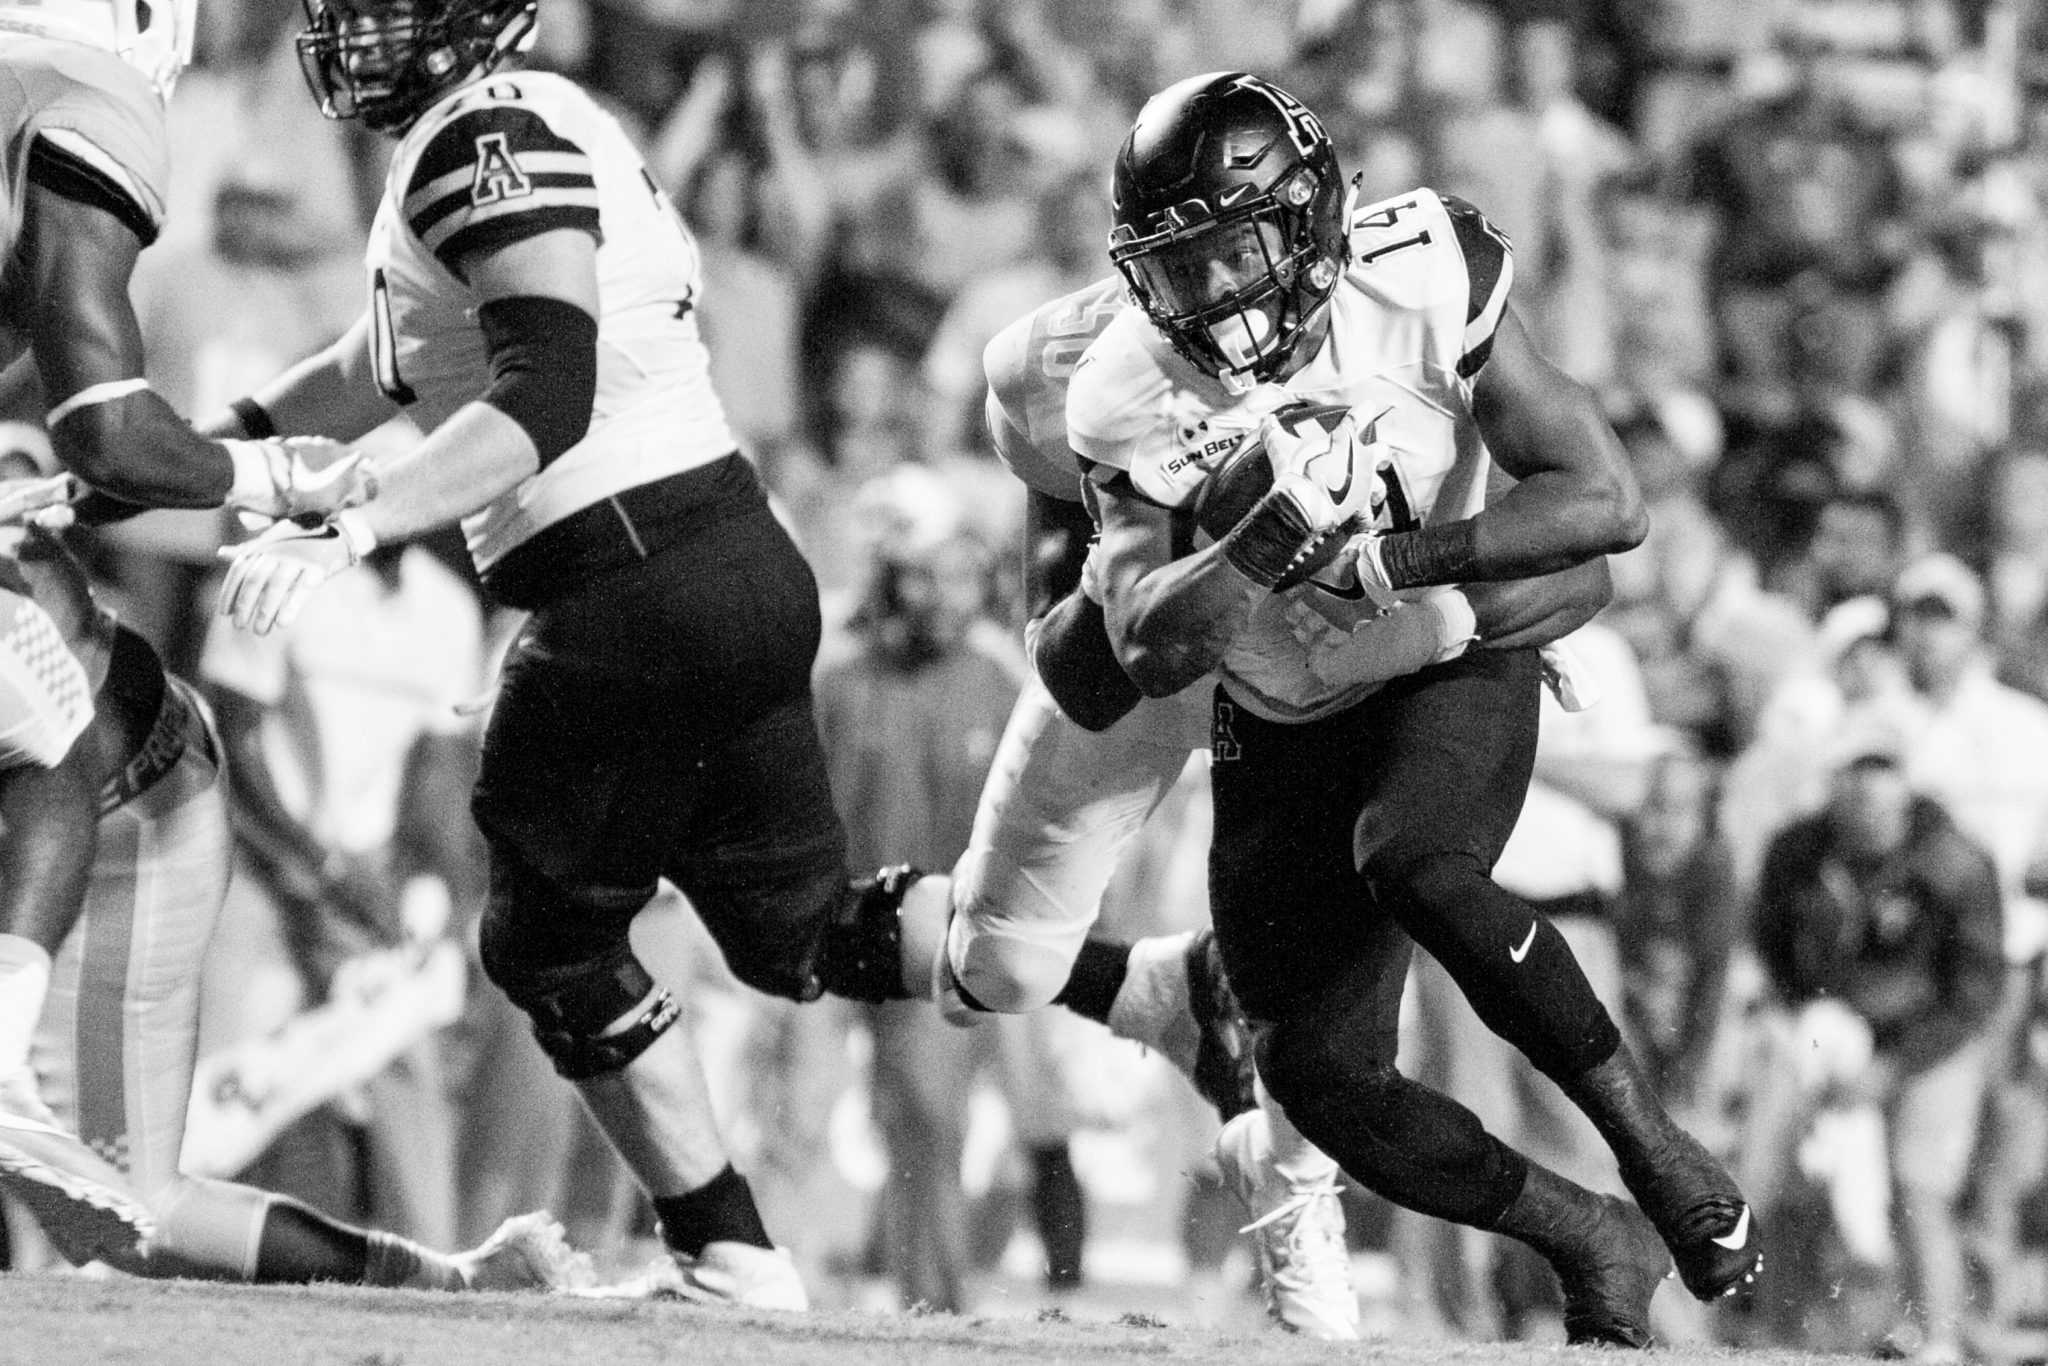 Senior+running+back+Marcus+Cox%2C+runs+the+ball+down+the+field+during+the+game+against+Univerity+of+Tennessee.